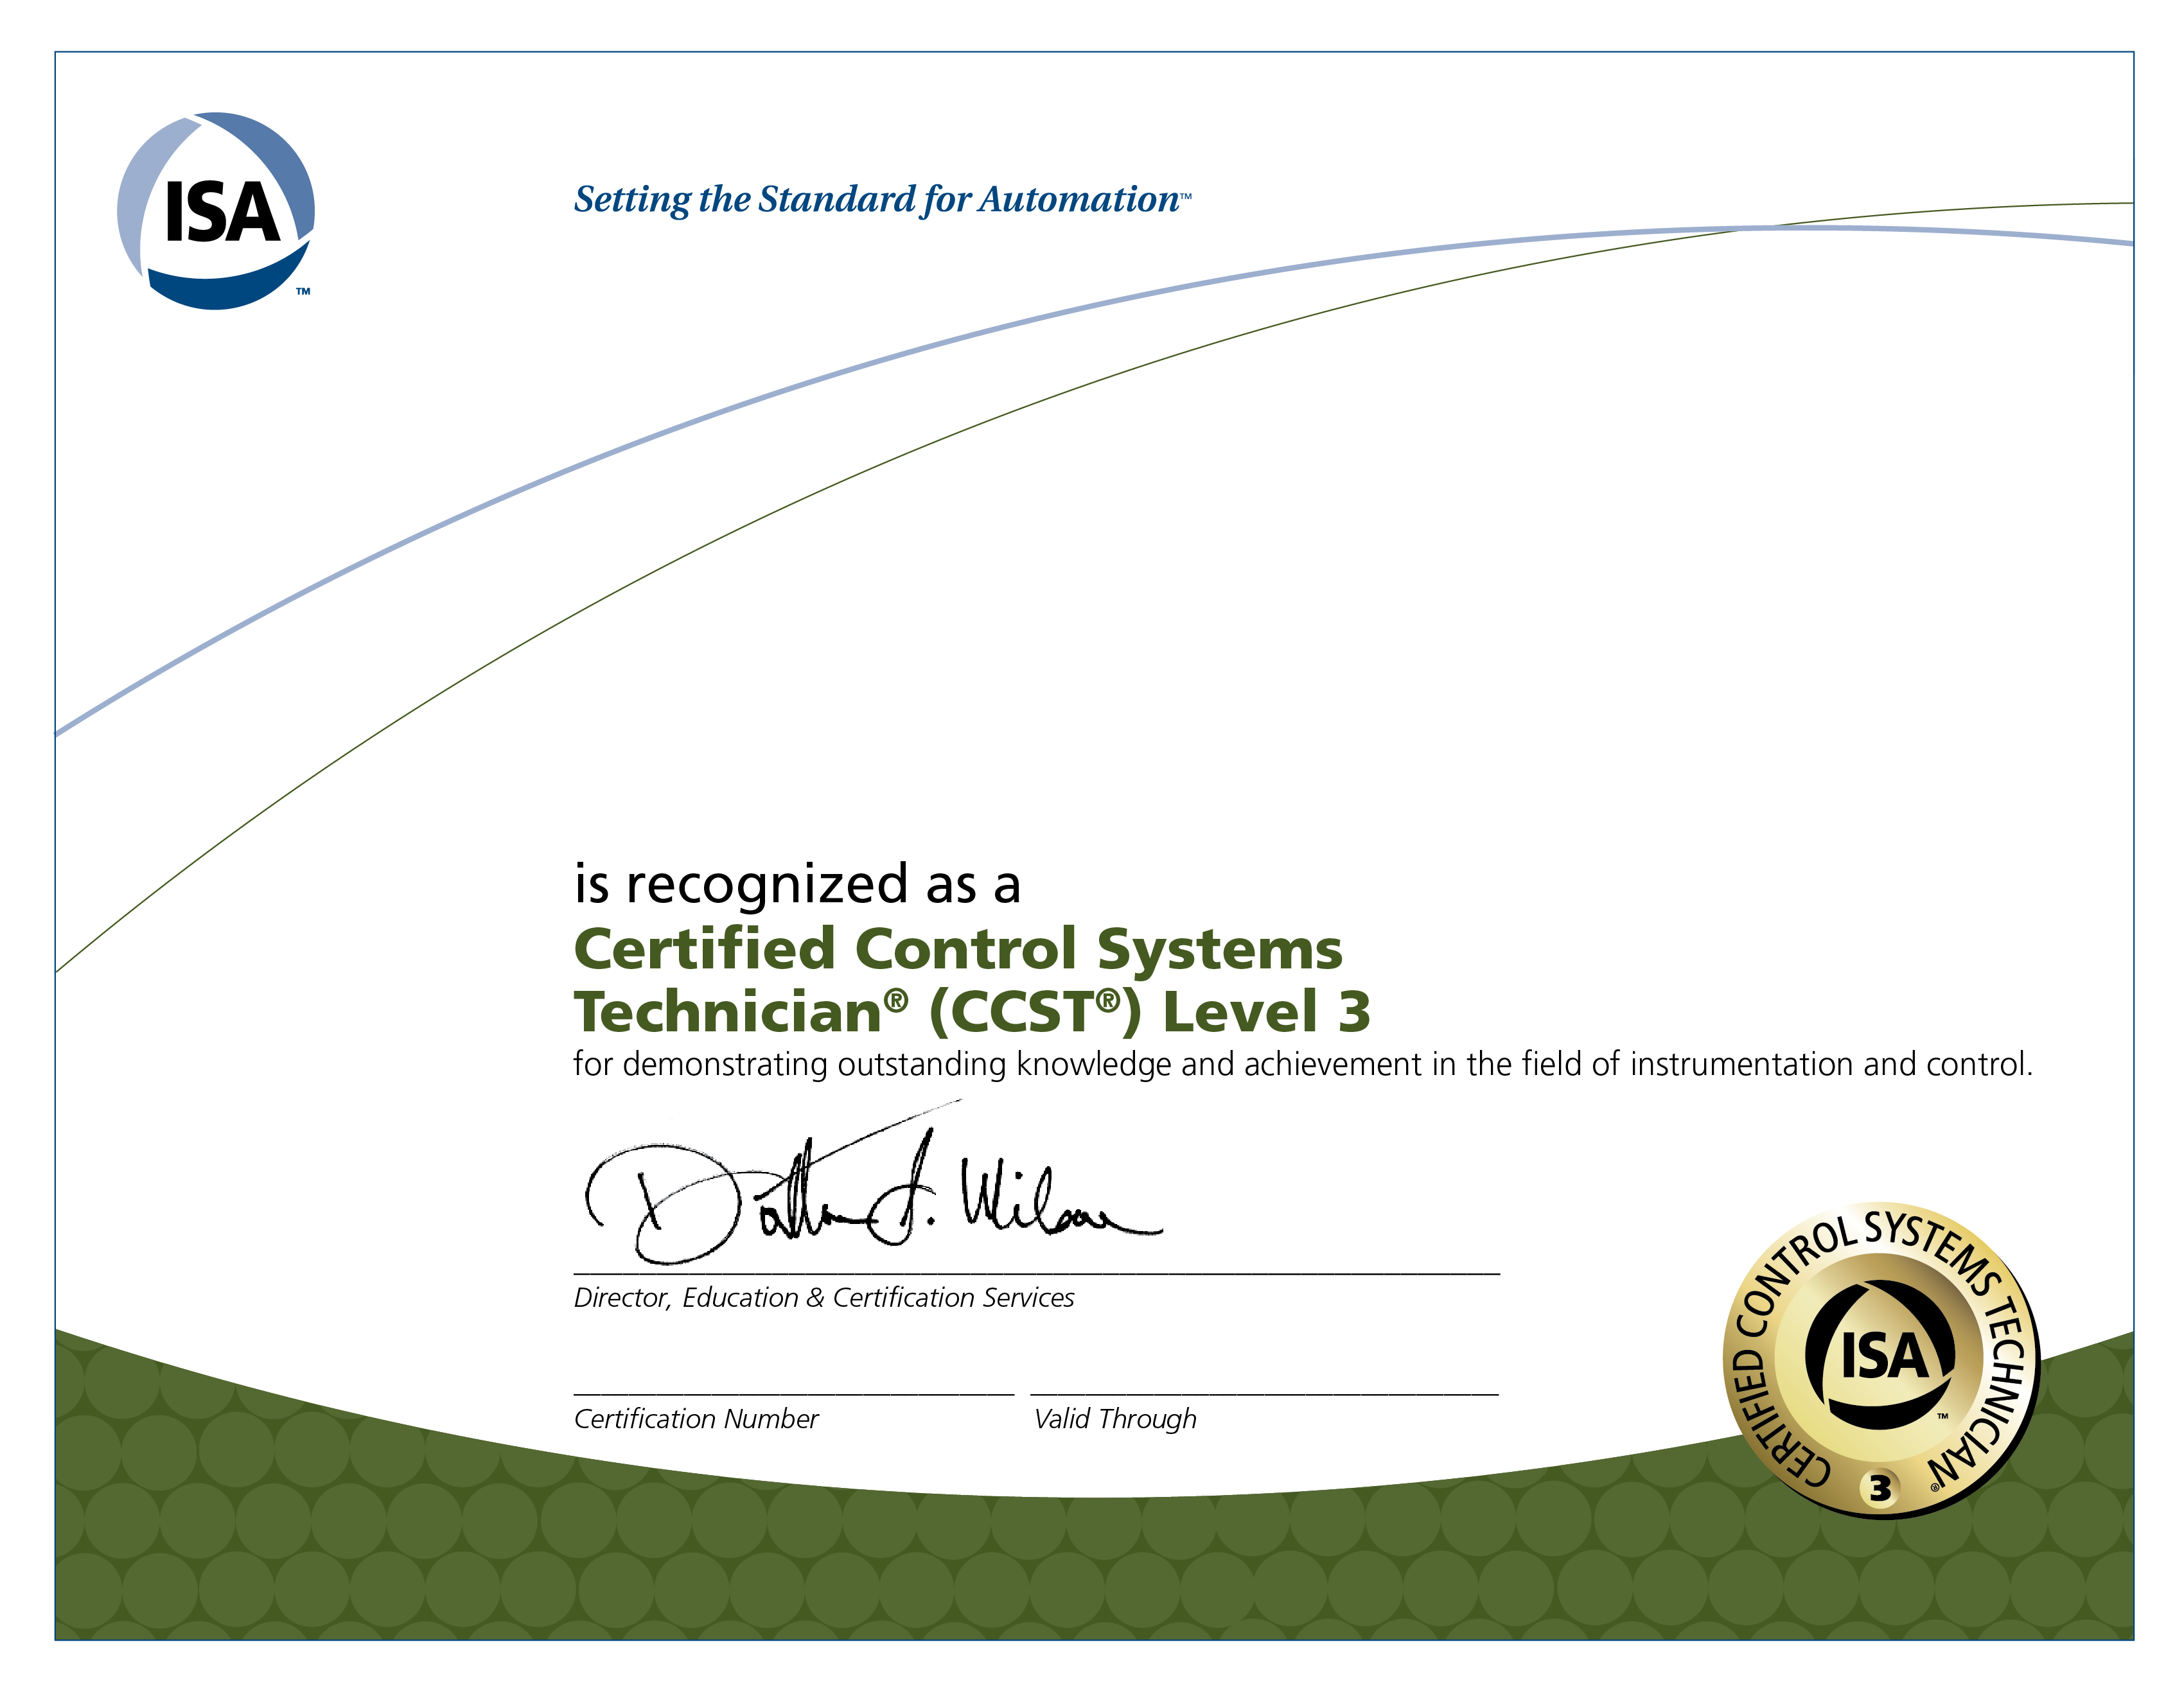 isa control systems certification certified technician ccst certificates system instrumentation accredible blockchain